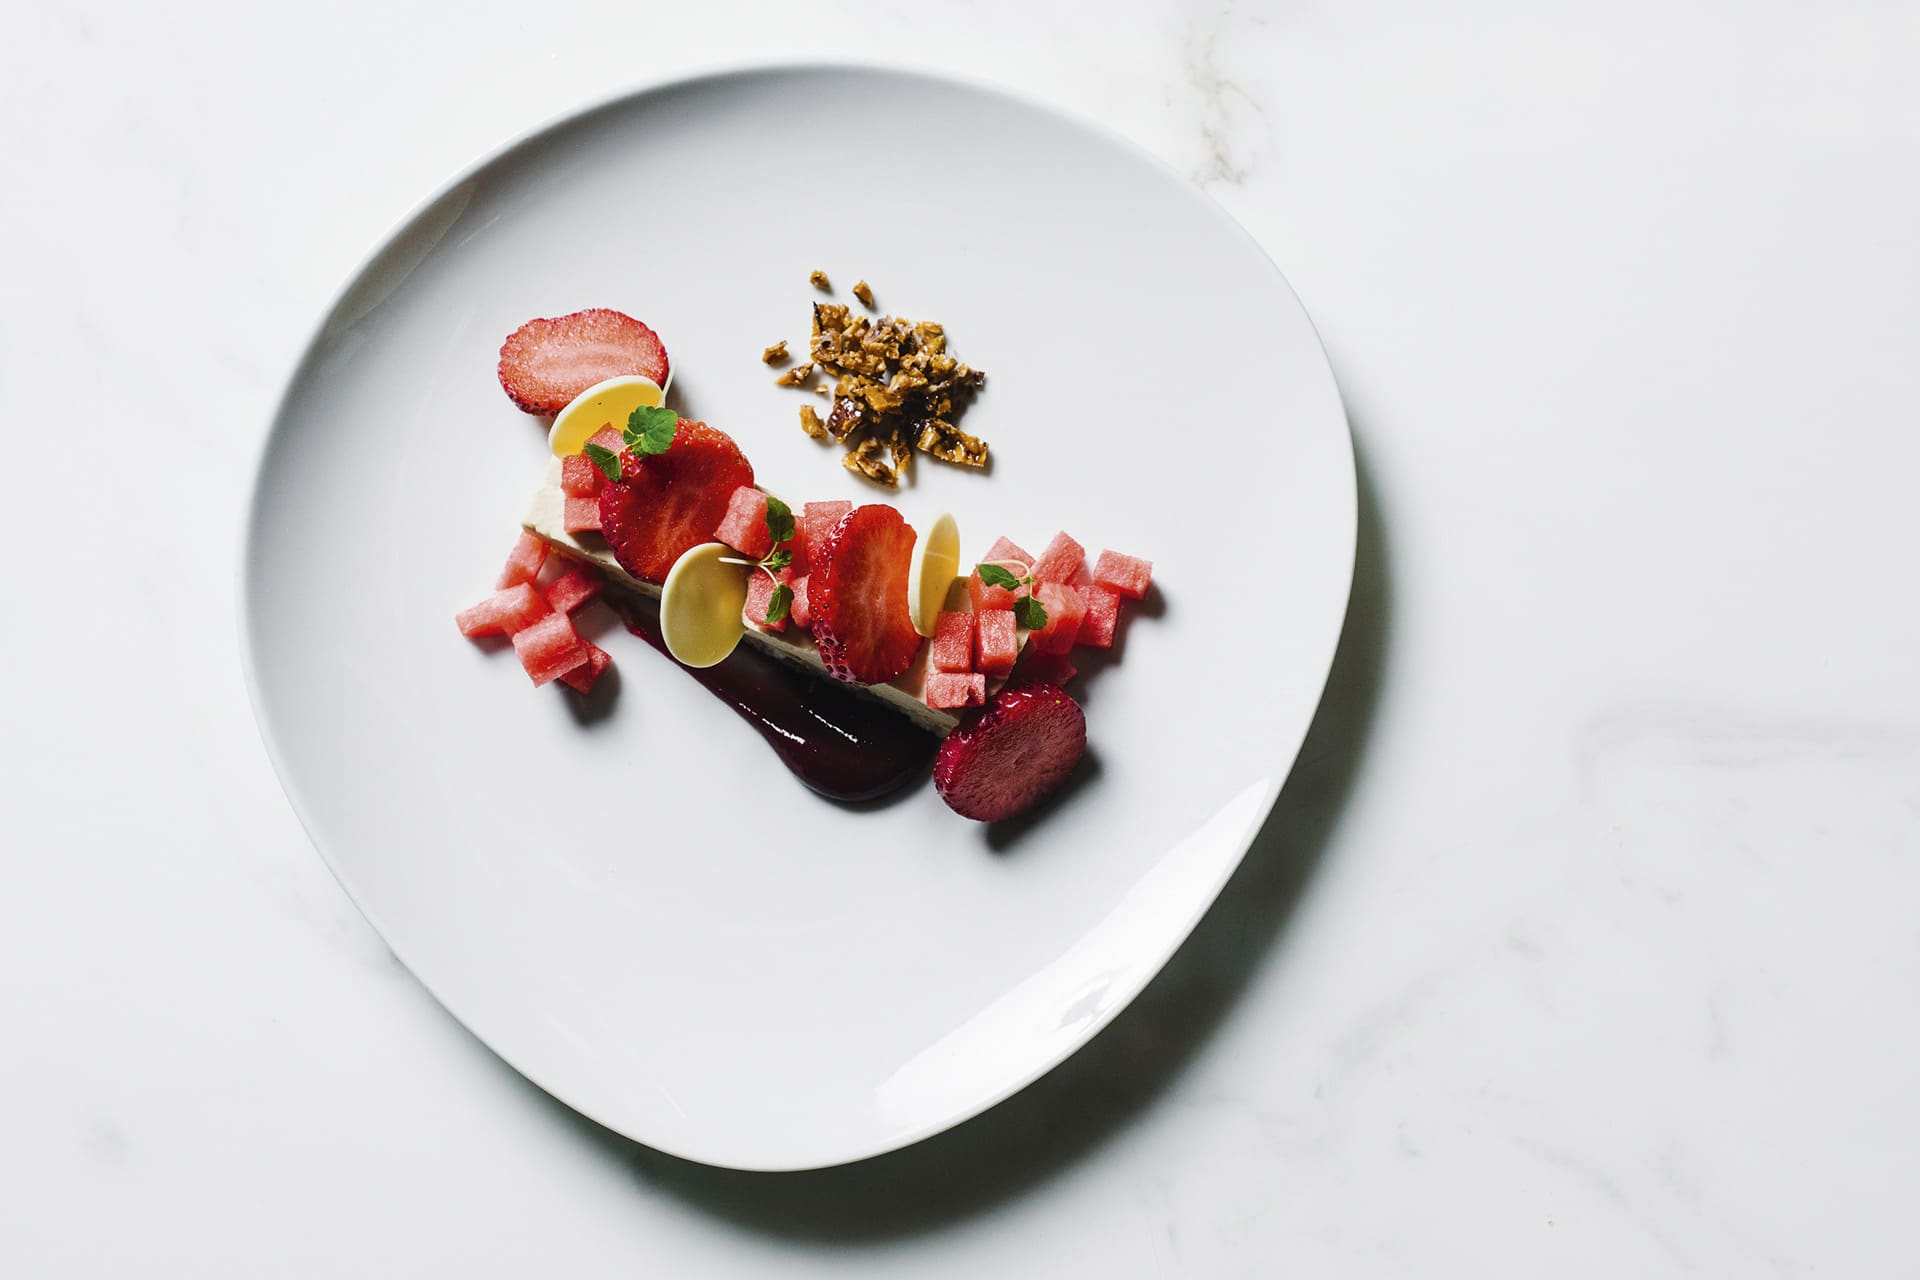 Coconut cake with strawberry sorbet and watermelon by Daniel Menzie, Wilmot ©Signe-Birck | Story on a Plate, Gestalten 2019